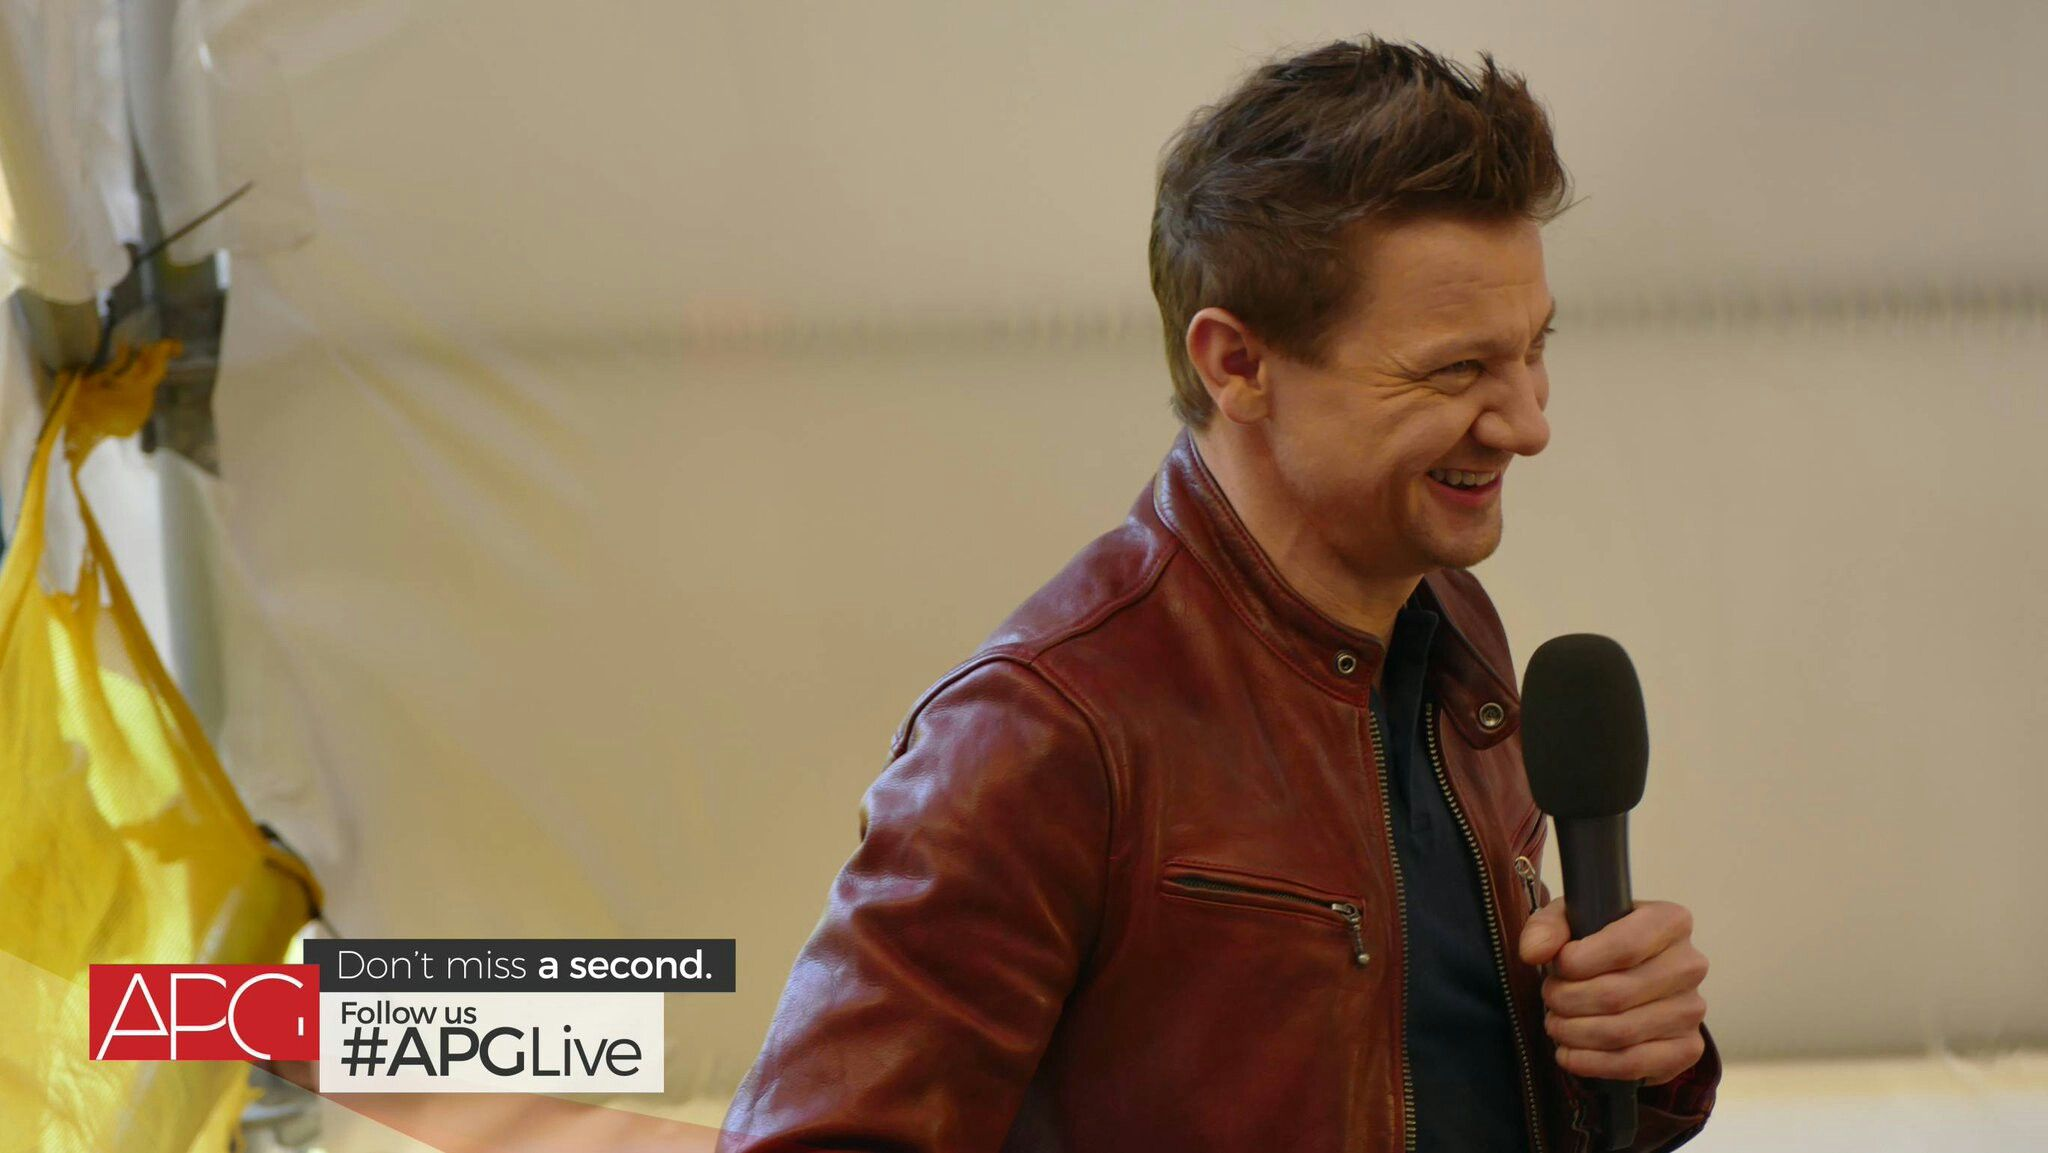 Jeremy Renner shuts down fan app after extreme trolling